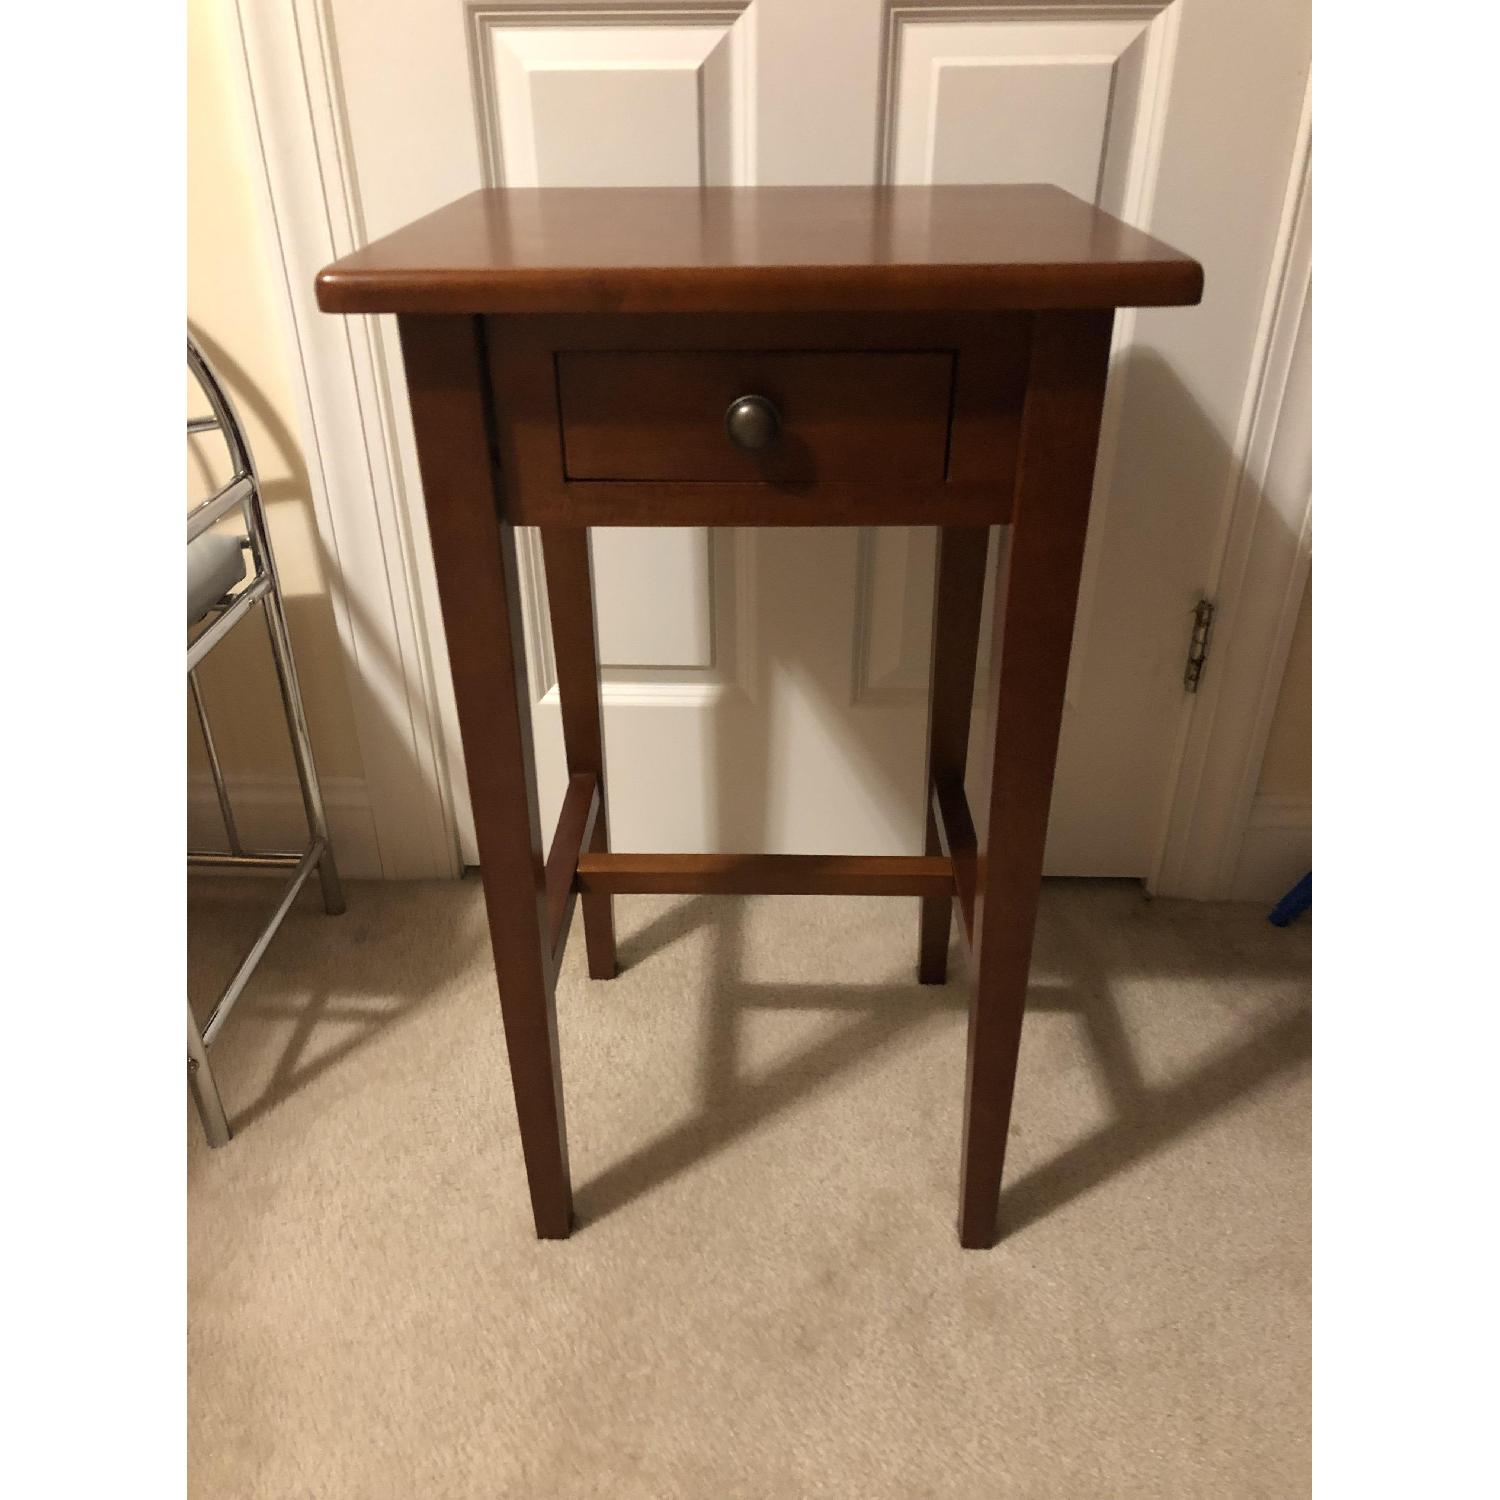 Darvin Furniture Maple Accent Table W Pullout Drawer Aptdeco